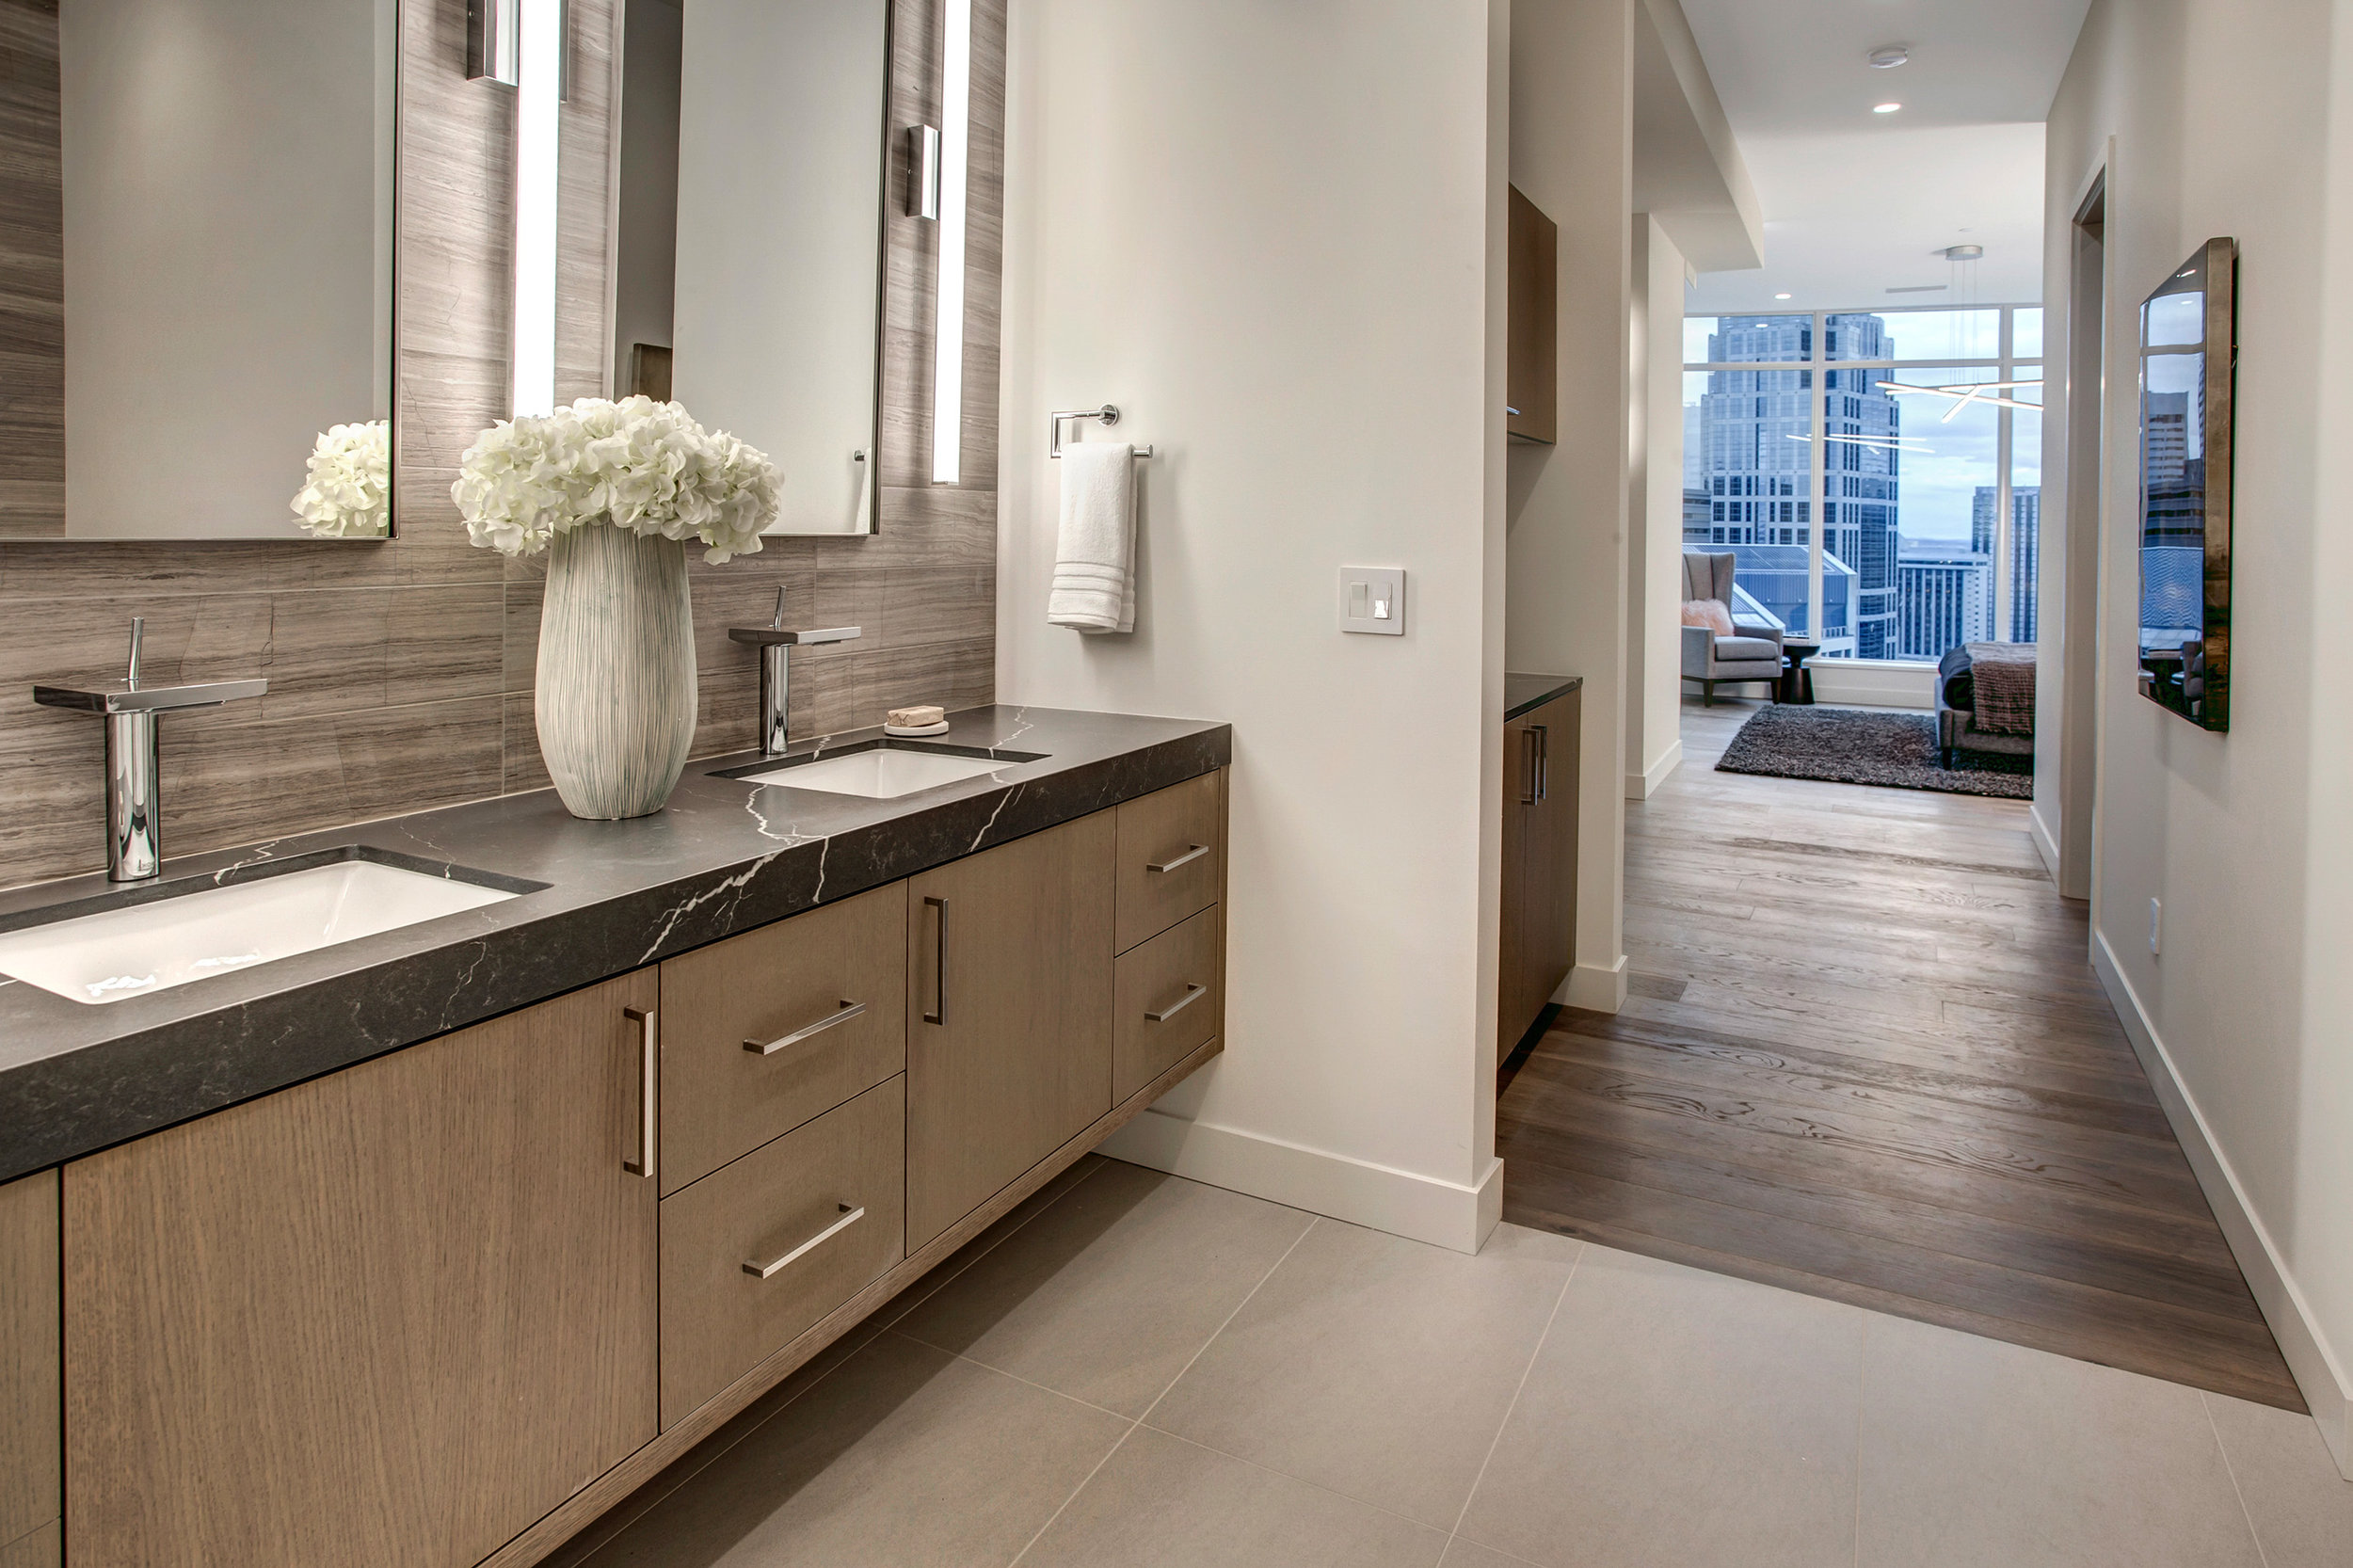 Master suite includes a built-in coffee nook, large walk-in closet, dual sink vanity with Hansgrohe Axor waterfall faucets, honed finish Quartz countertop, and Marble tile accent wall.